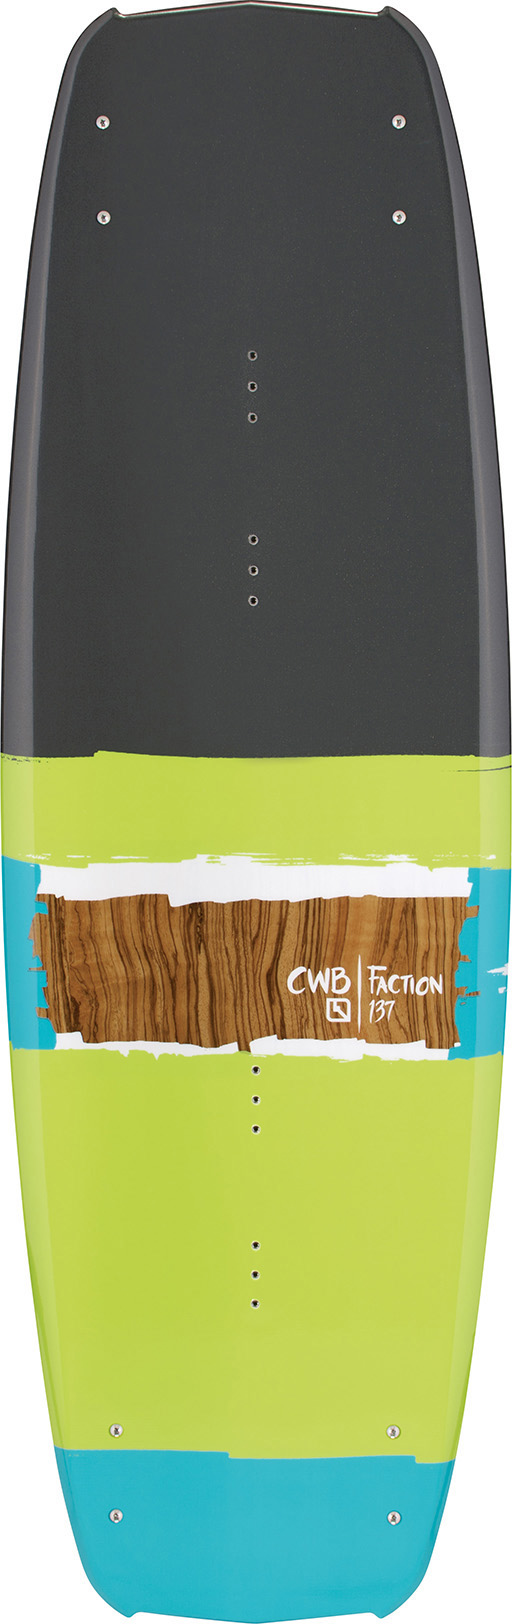 Вейкборд CWB FACTION Black-Lime